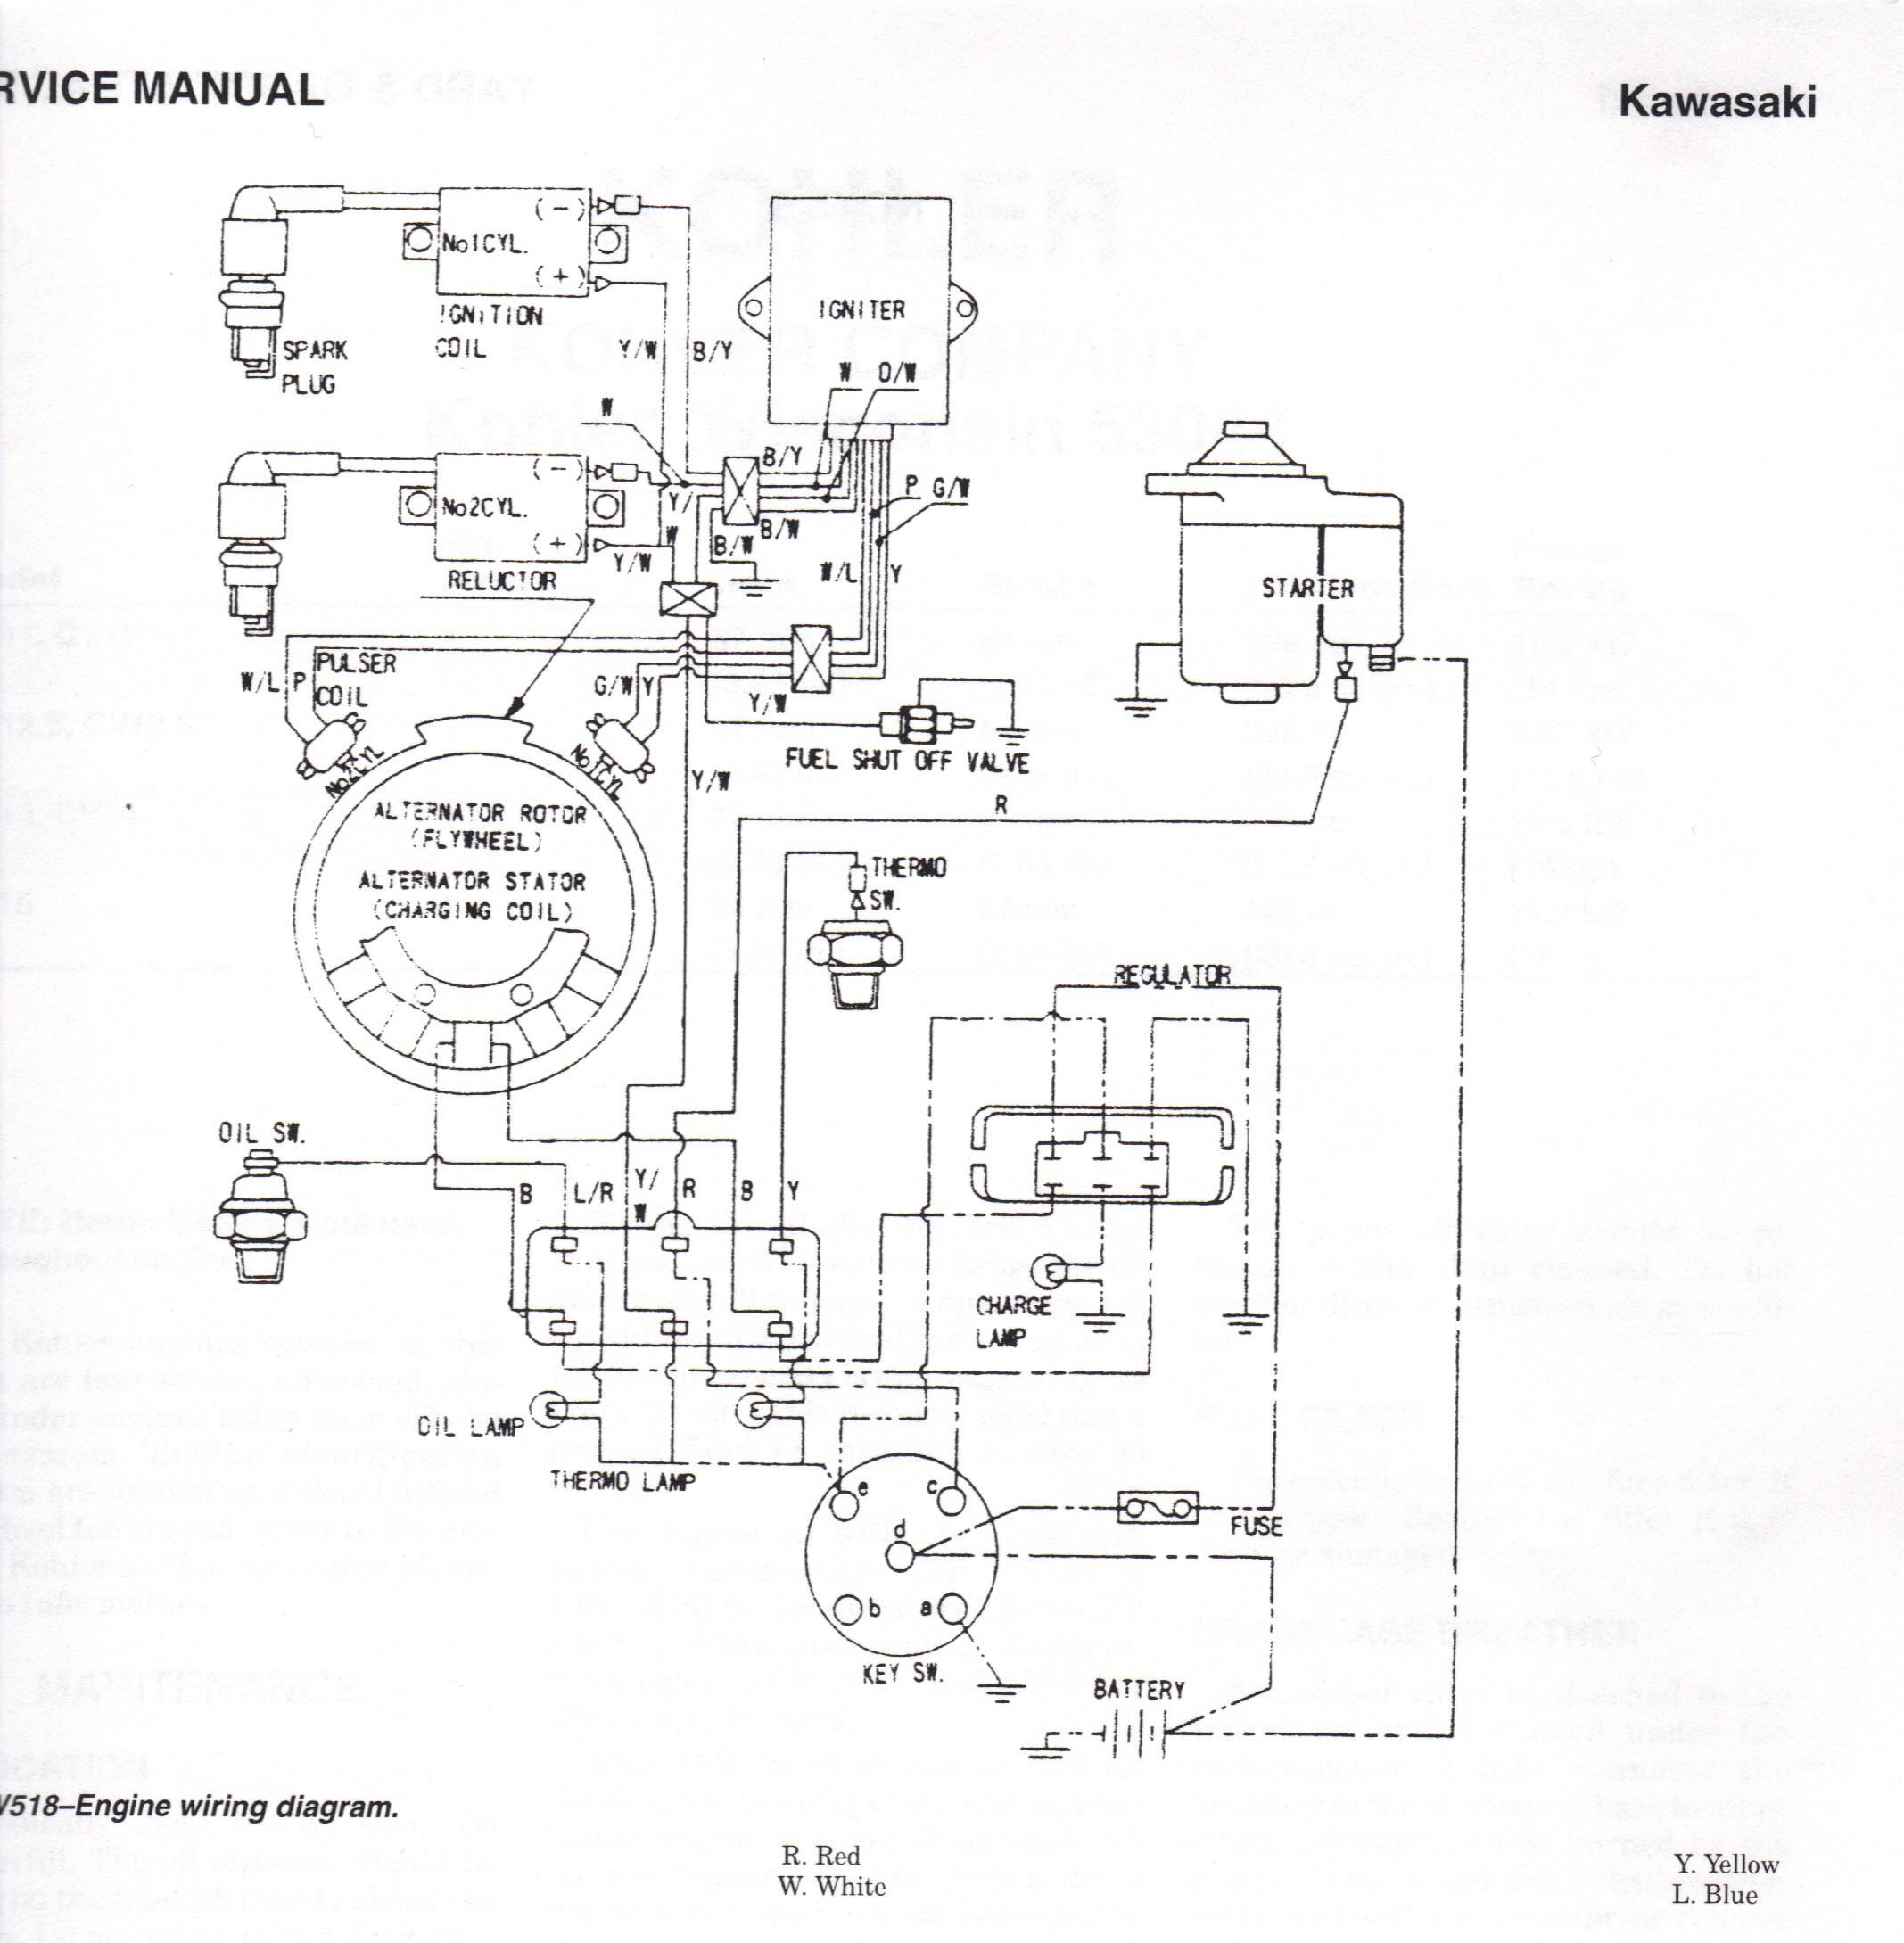 hight resolution of john deere 757 wiring diagram wiring diagram newwiring diagrams for 757 john deere 25 hp kawasaki